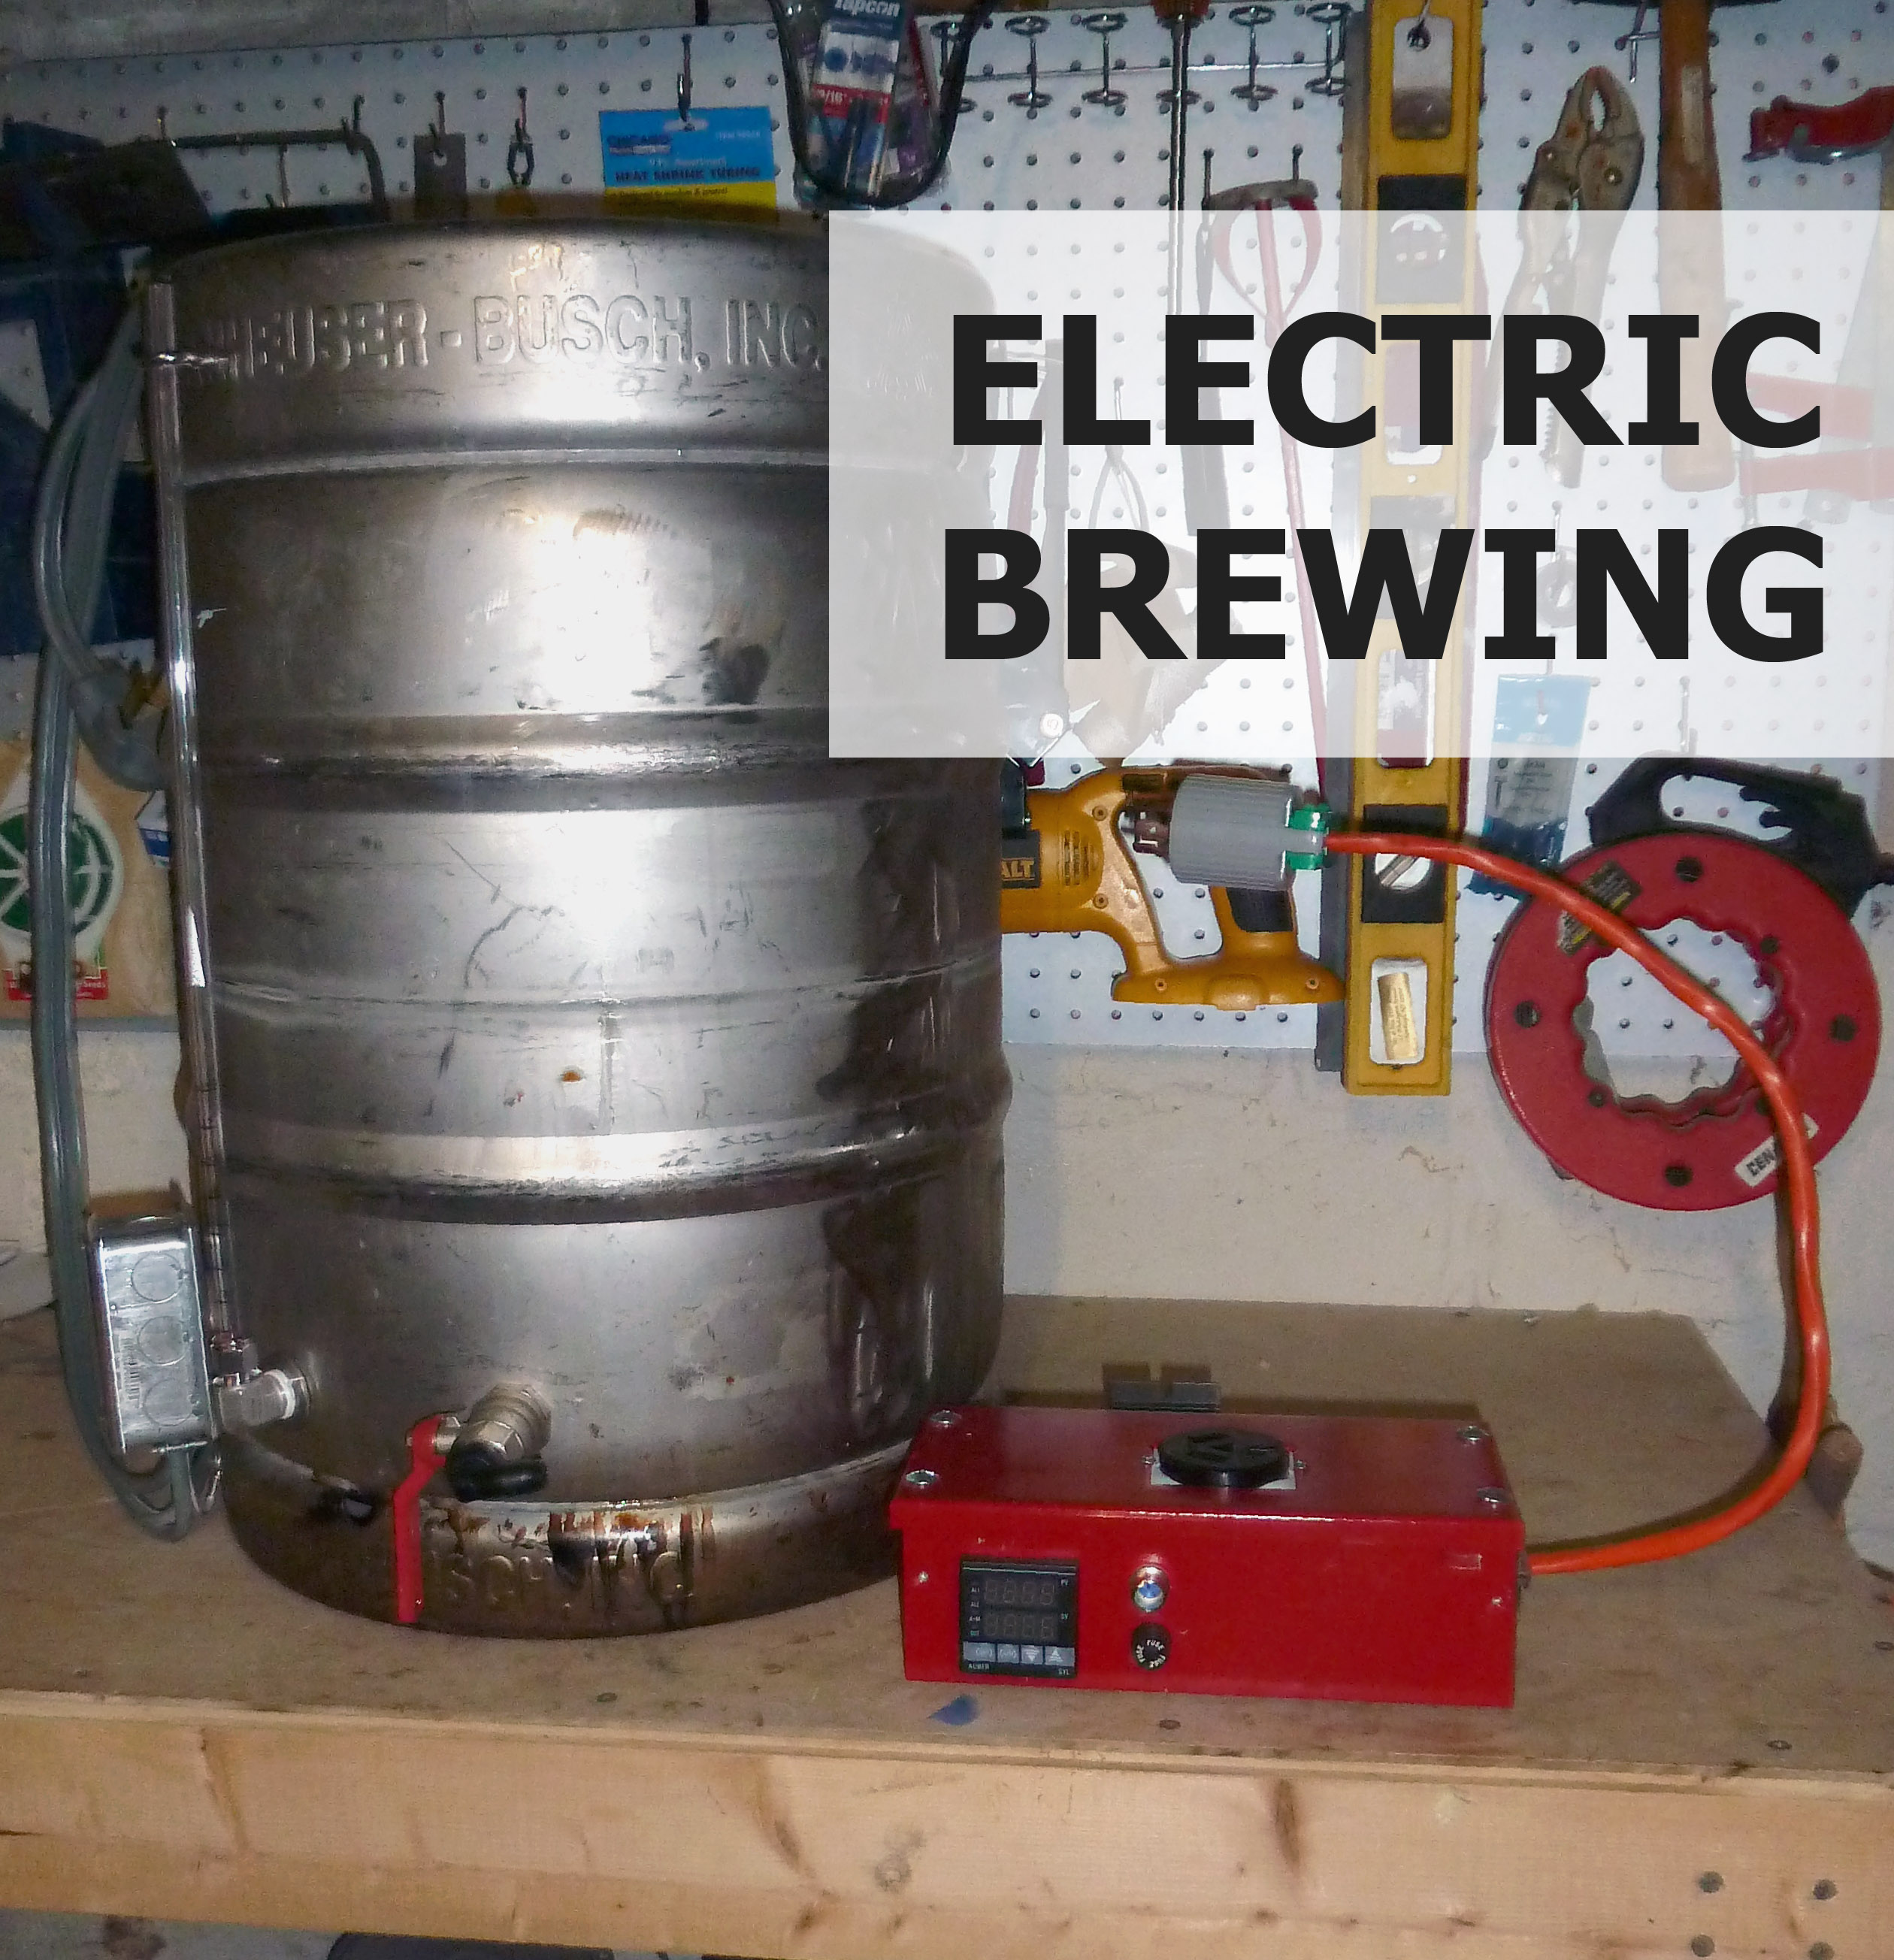 Electric beer brewing system